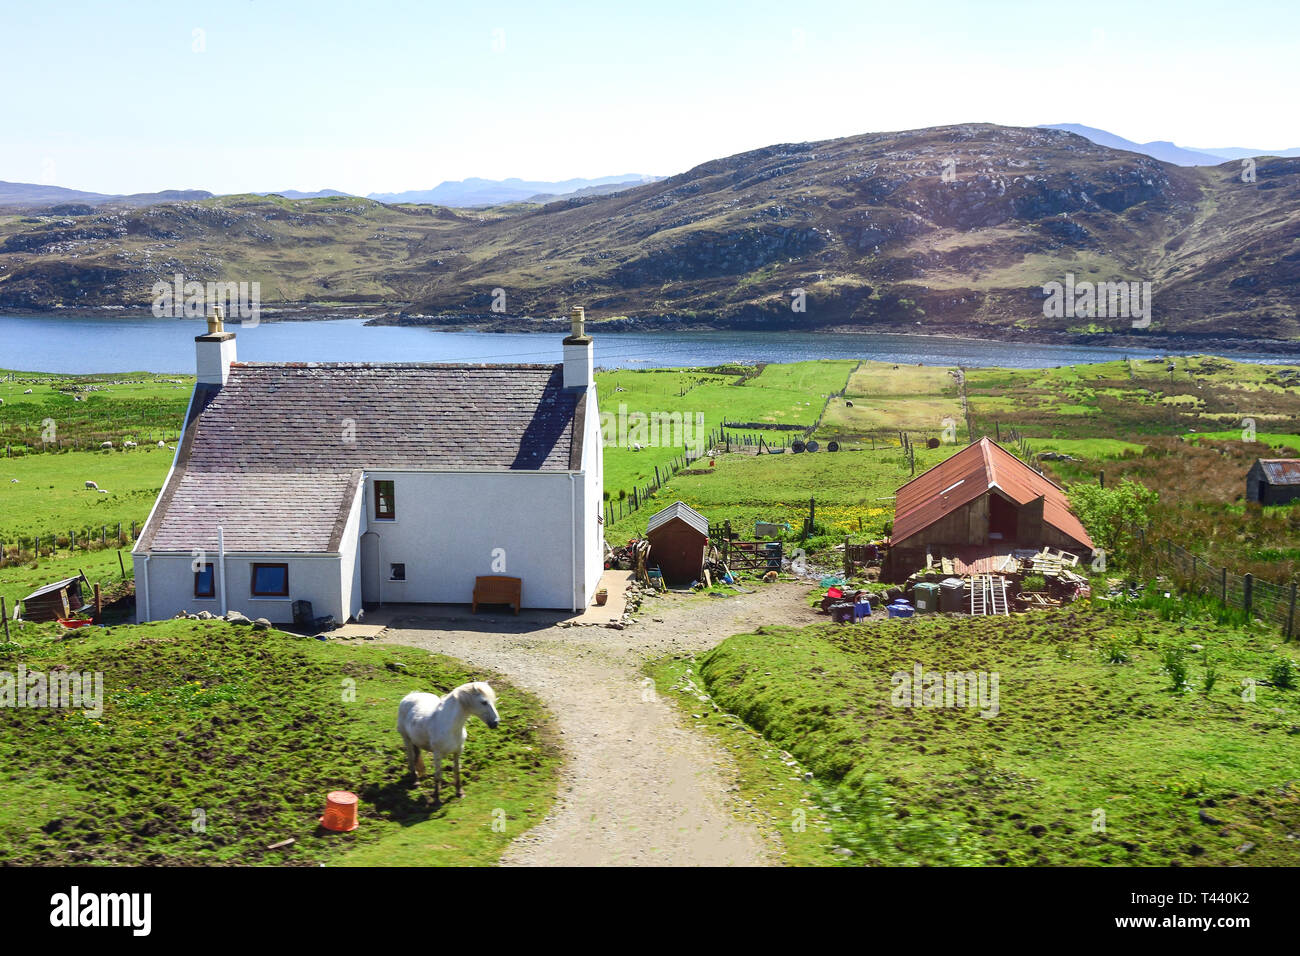 Small farmhouse in central Lewis, Isle of Lewis, Outer Hebrides, Na h-Eileanan Siar, Scotland, United Kingdom - Stock Image